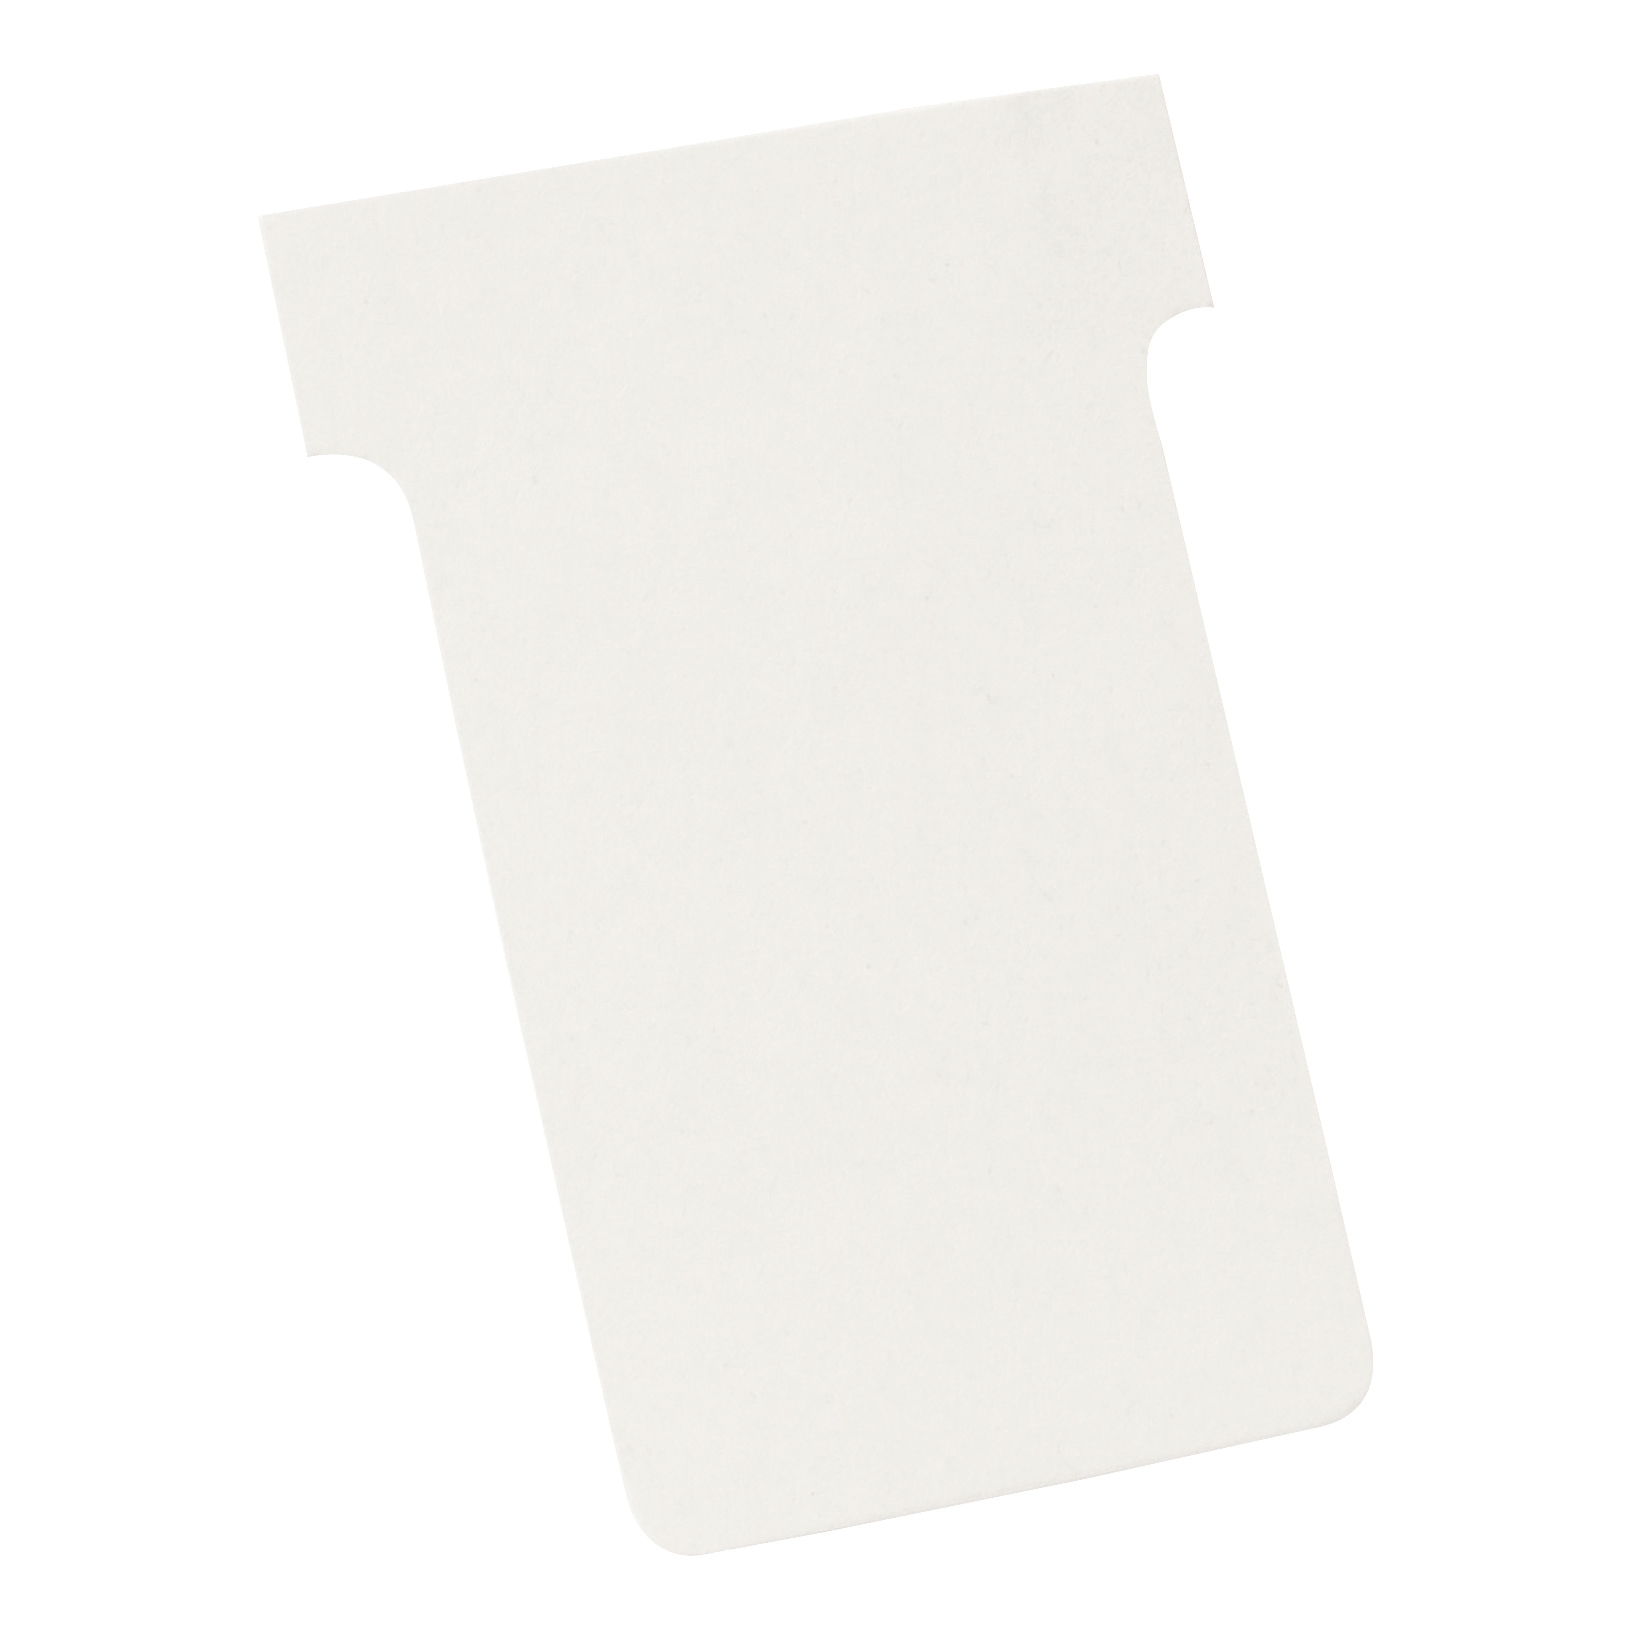 Image for Nobo T-Cards 160gsm Tab Top 15mm W61x Bottom W48.5x Full H86mm Size 2 White Ref 2002002 [Pack 100]